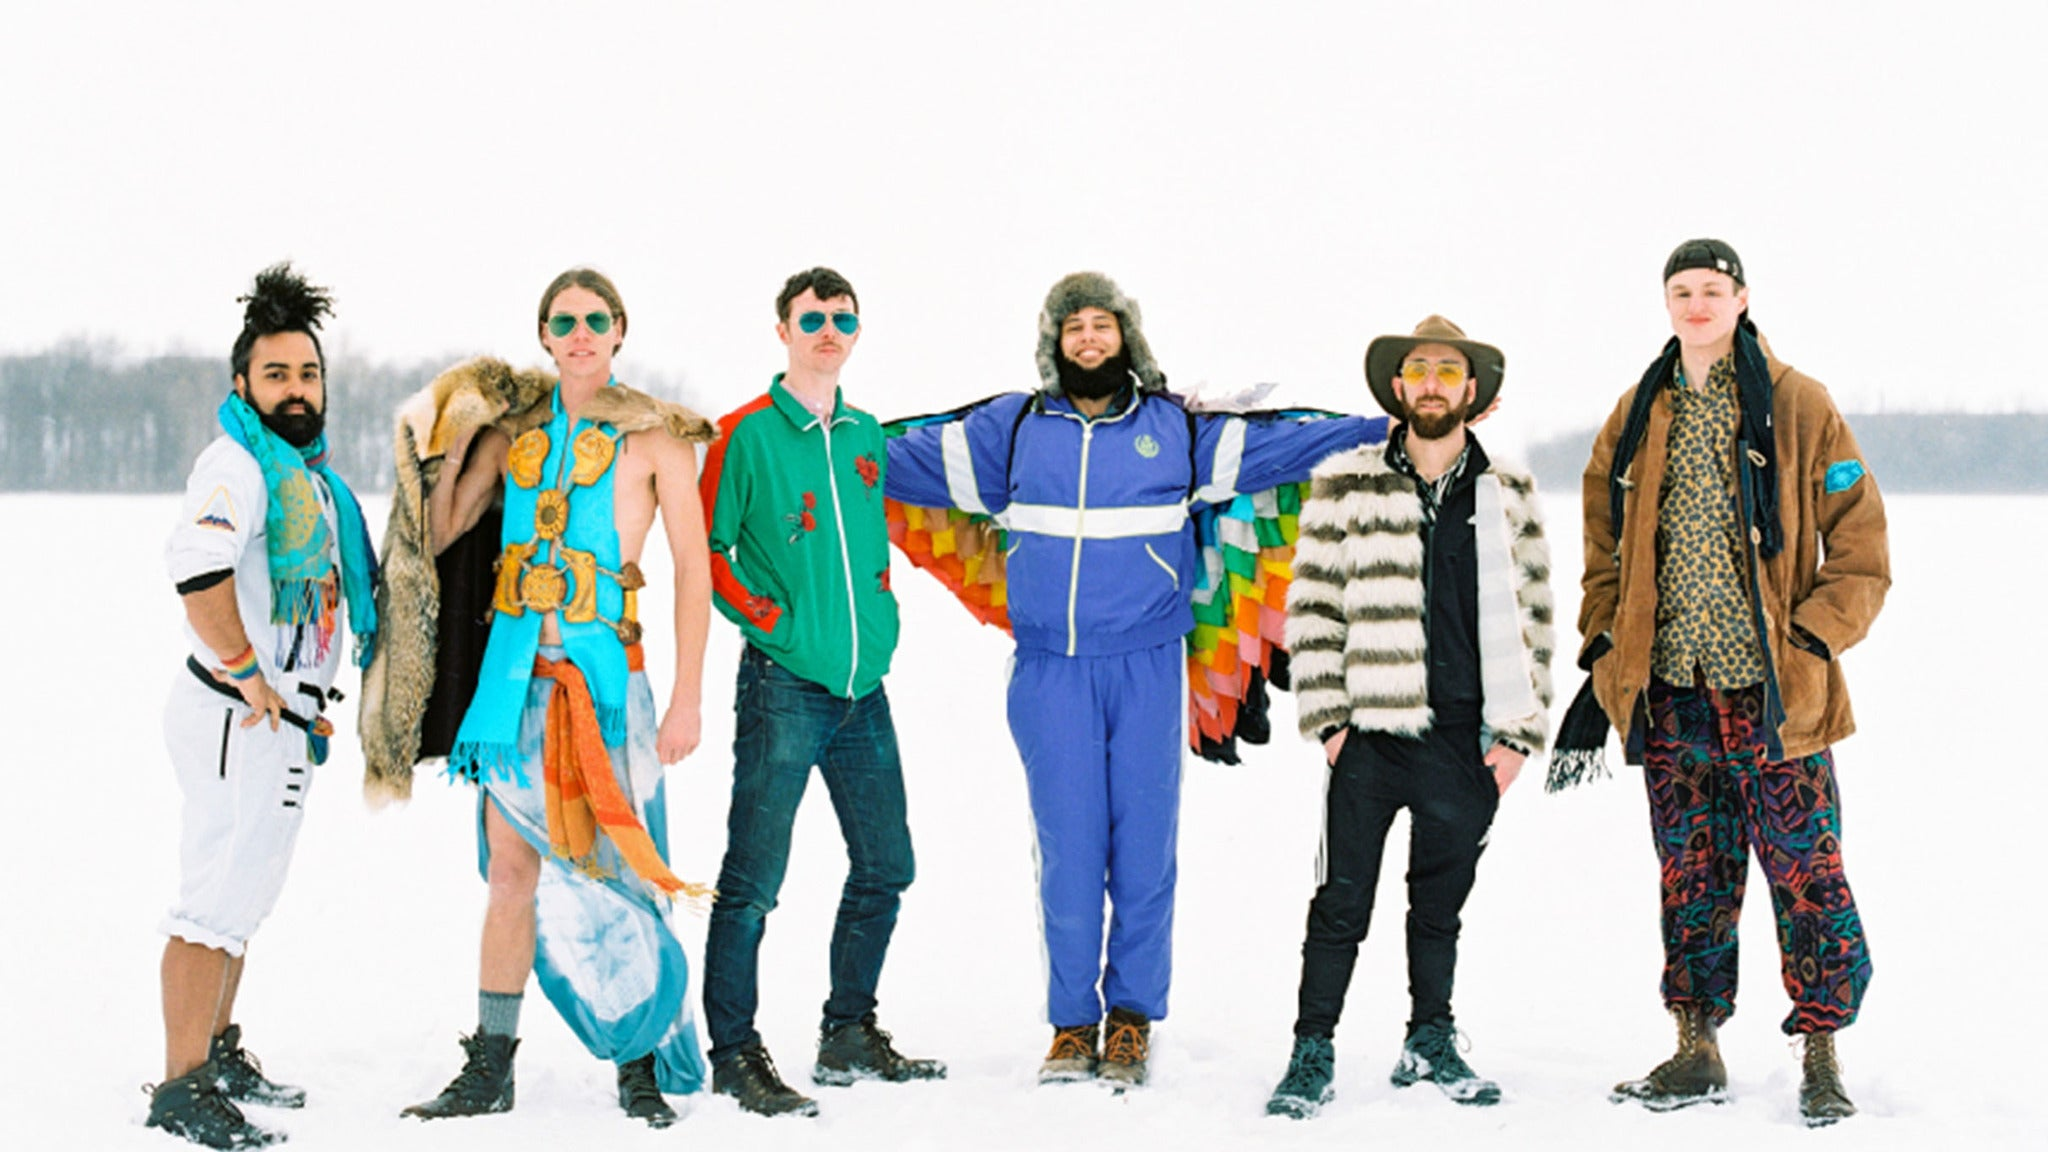 Joe Hertler & The Rainbow Seekers, Los Elk